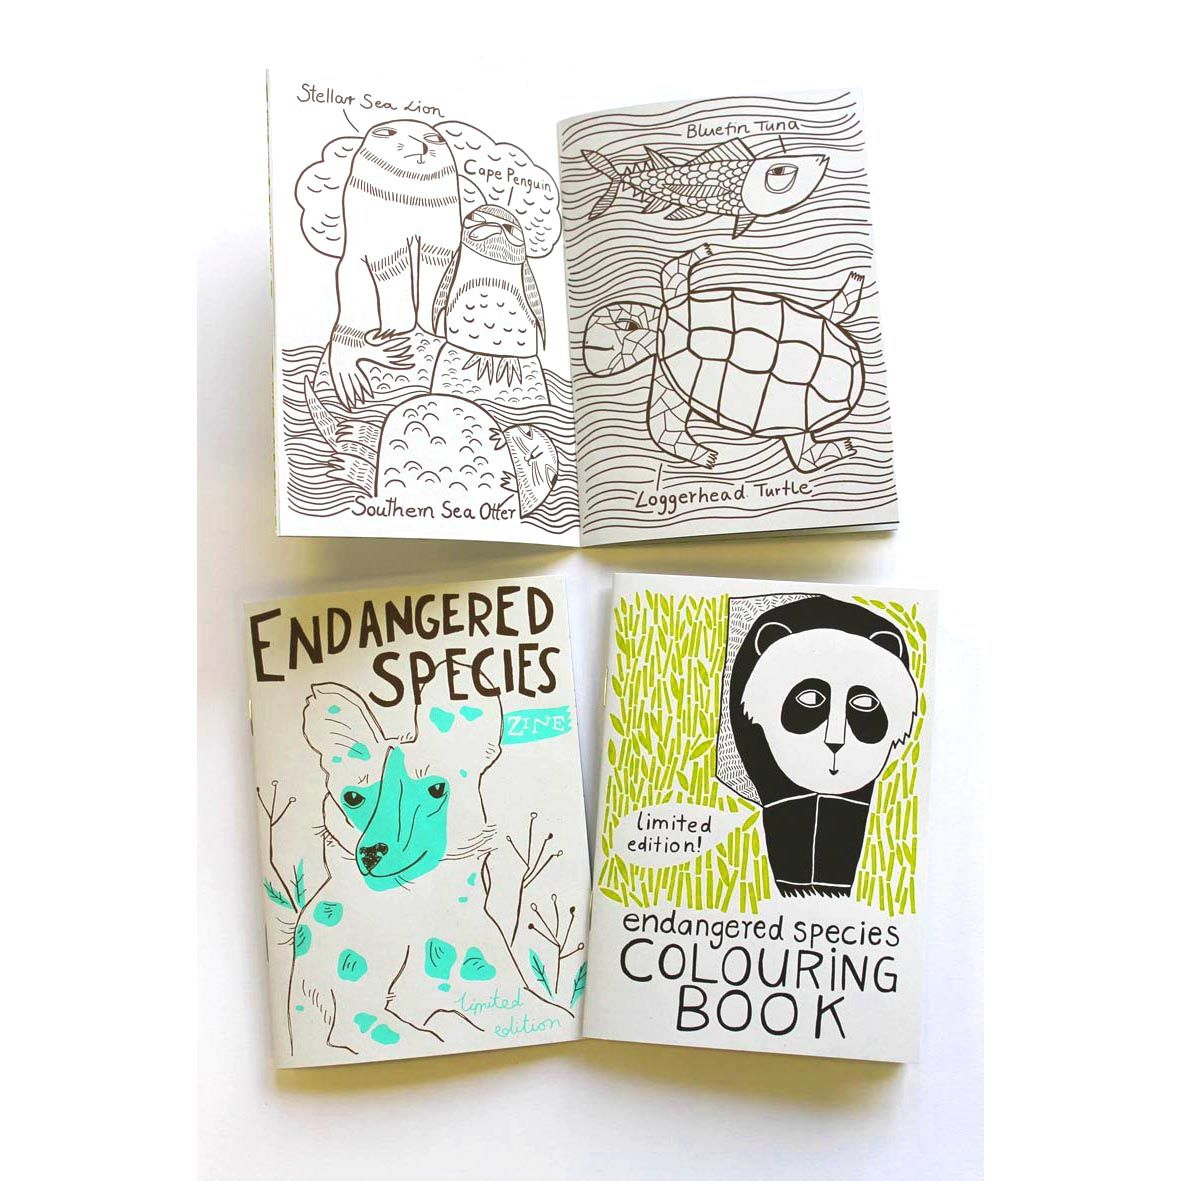 Endangered Species Colouring In Book Zine The Red Door Gallery Affordable Art And Design Editioned Prints Book Art Gallery Art Prints Coloring Books